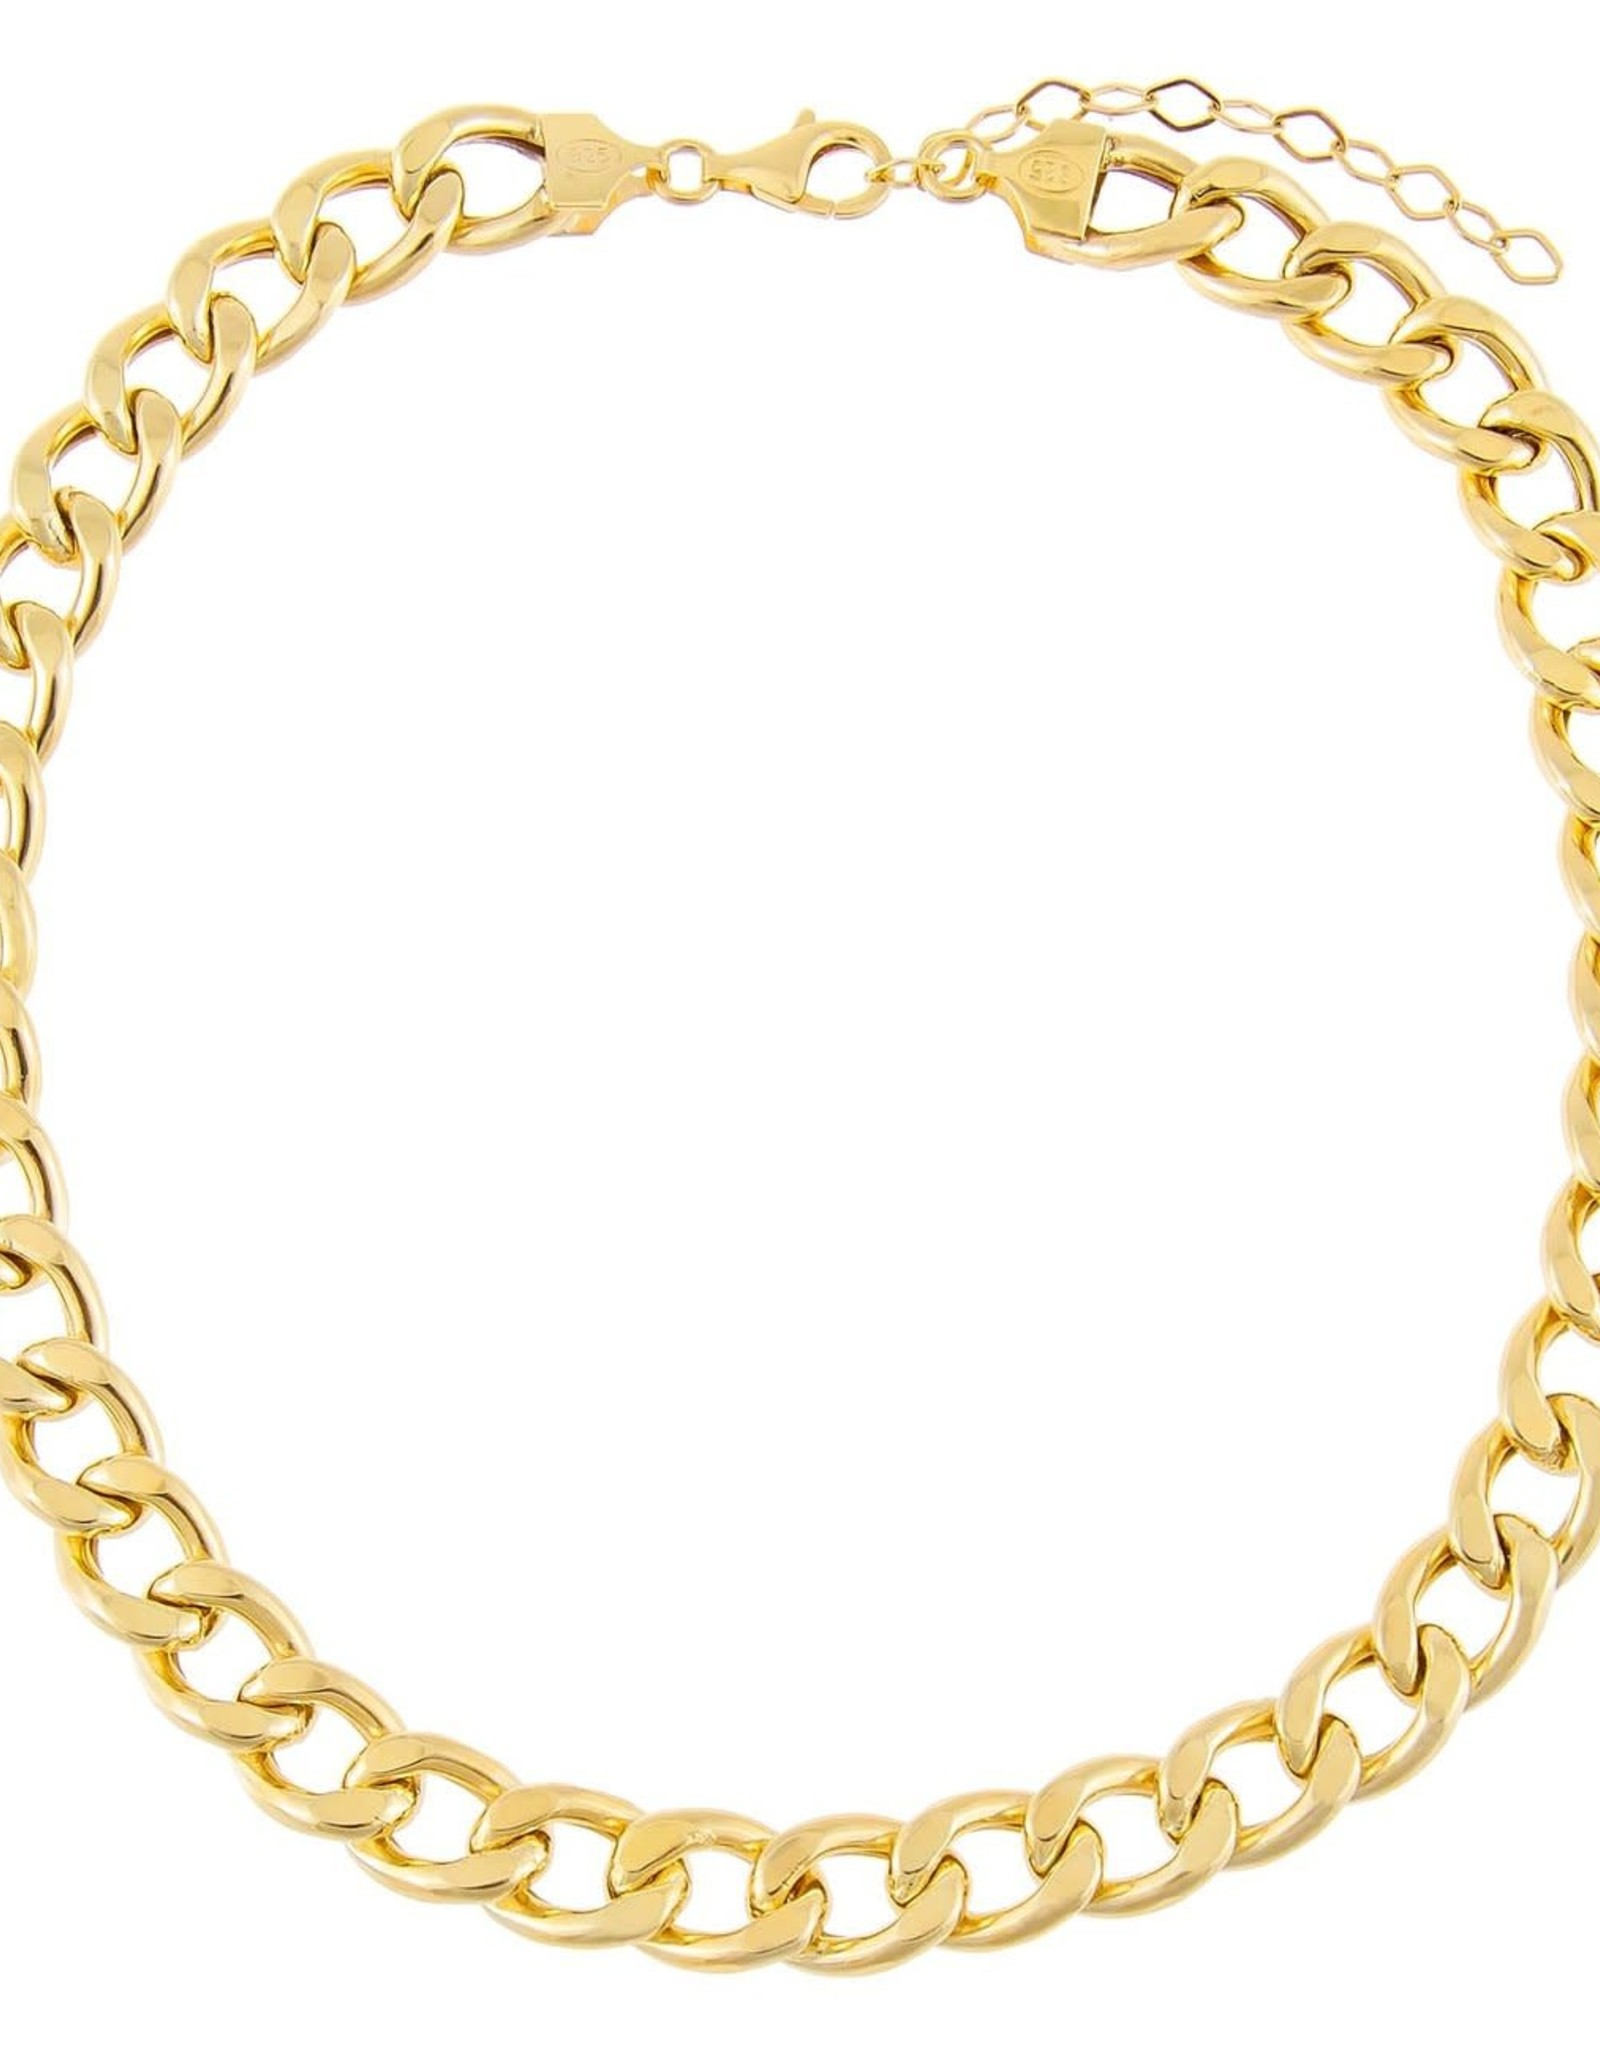 Adinas Hollow Chunky Curb Chain Choker